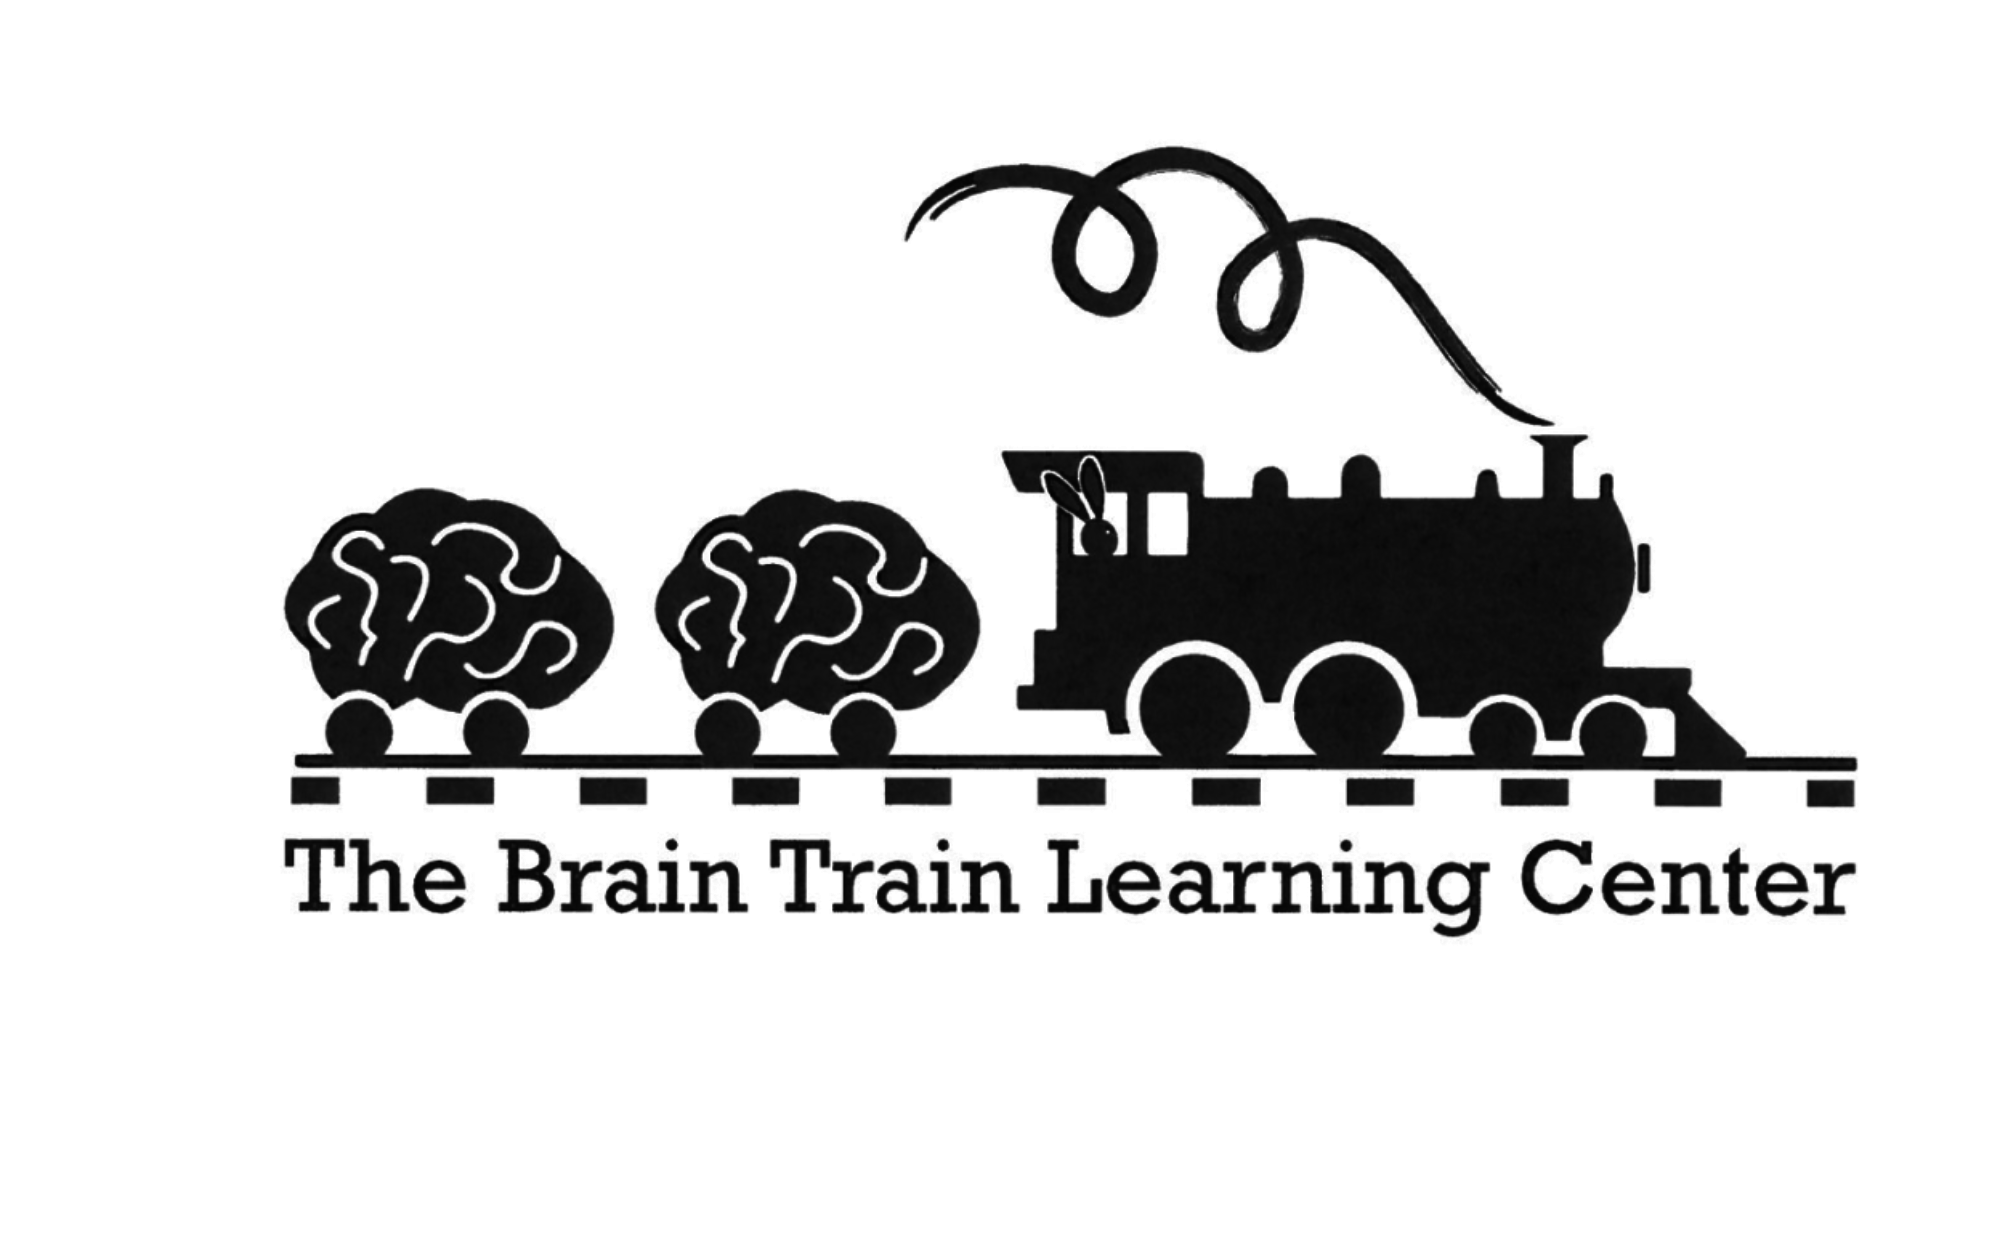 The Brain Train Learning Center